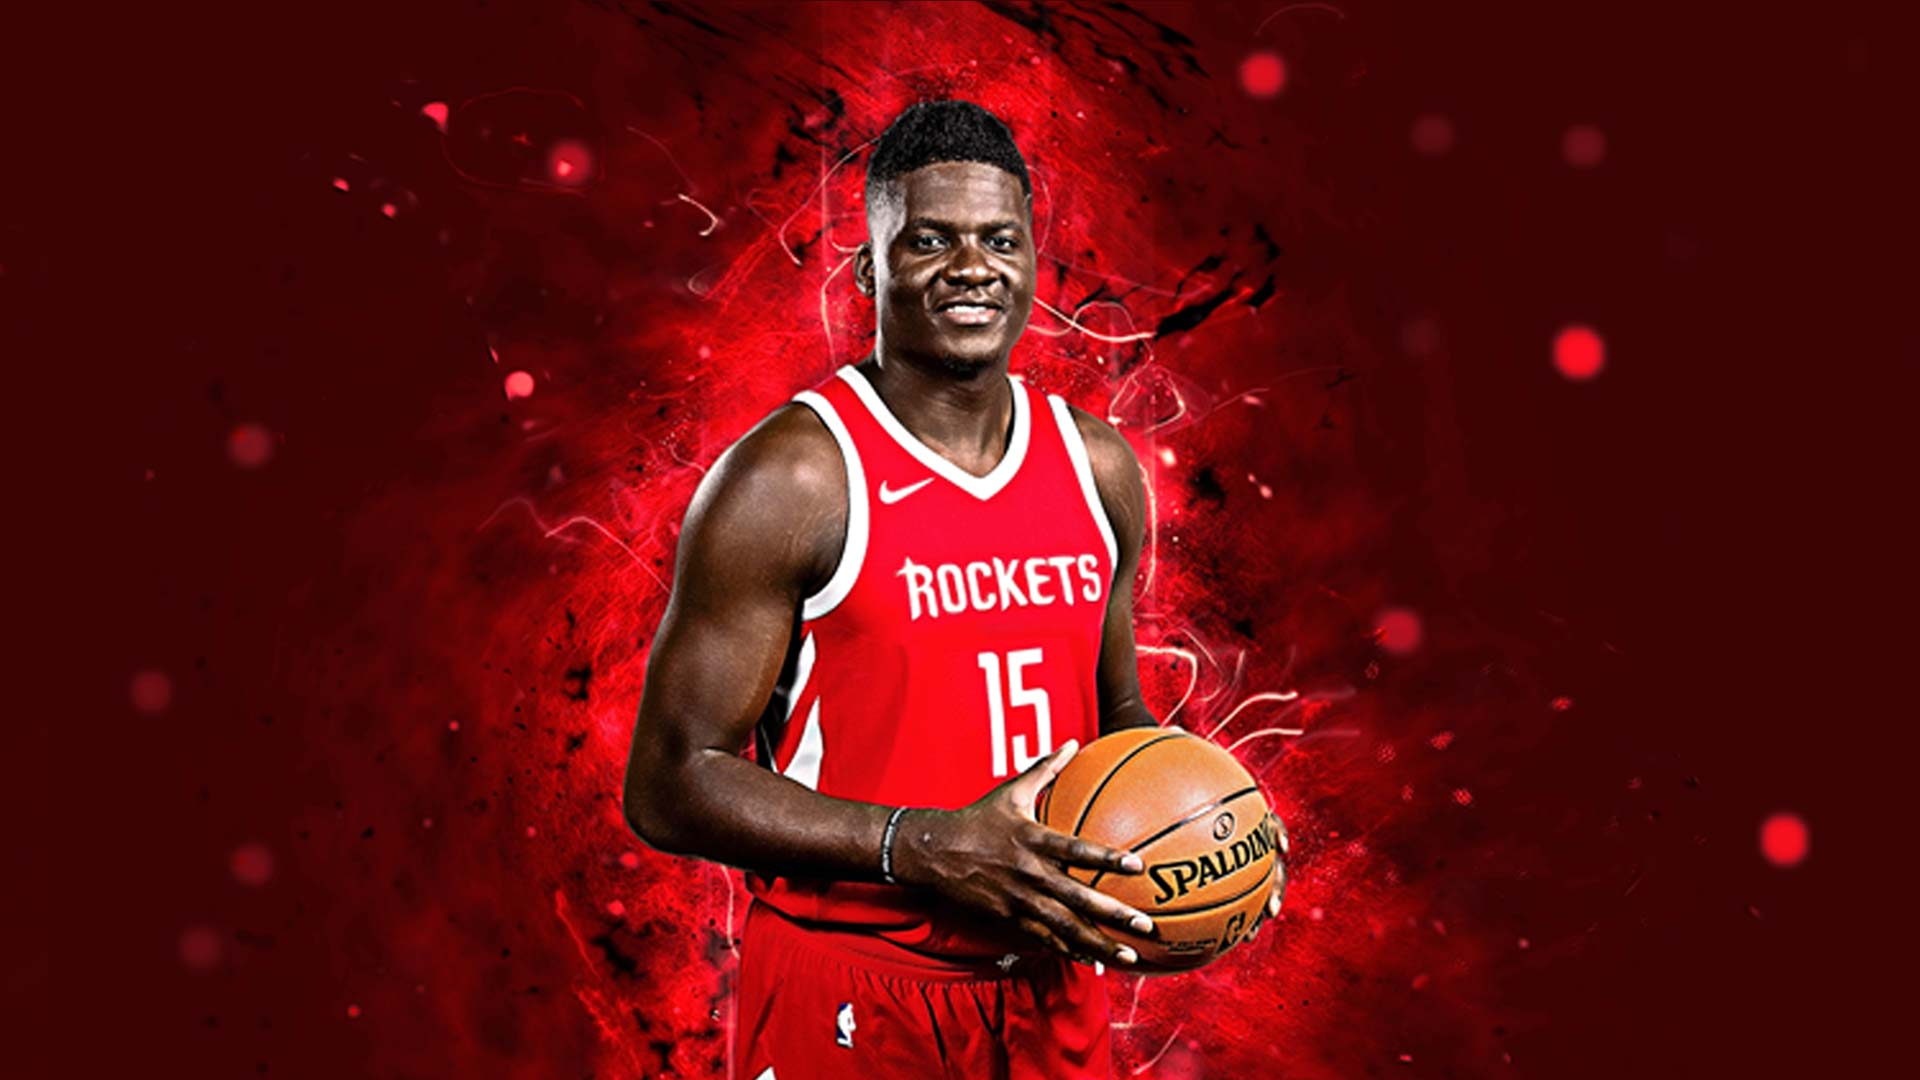 Pour Noël, Baskethouse en collaboration avec Clint Capela et Nike met en vente le maillot de Clint Capela Houston rouge NBA.